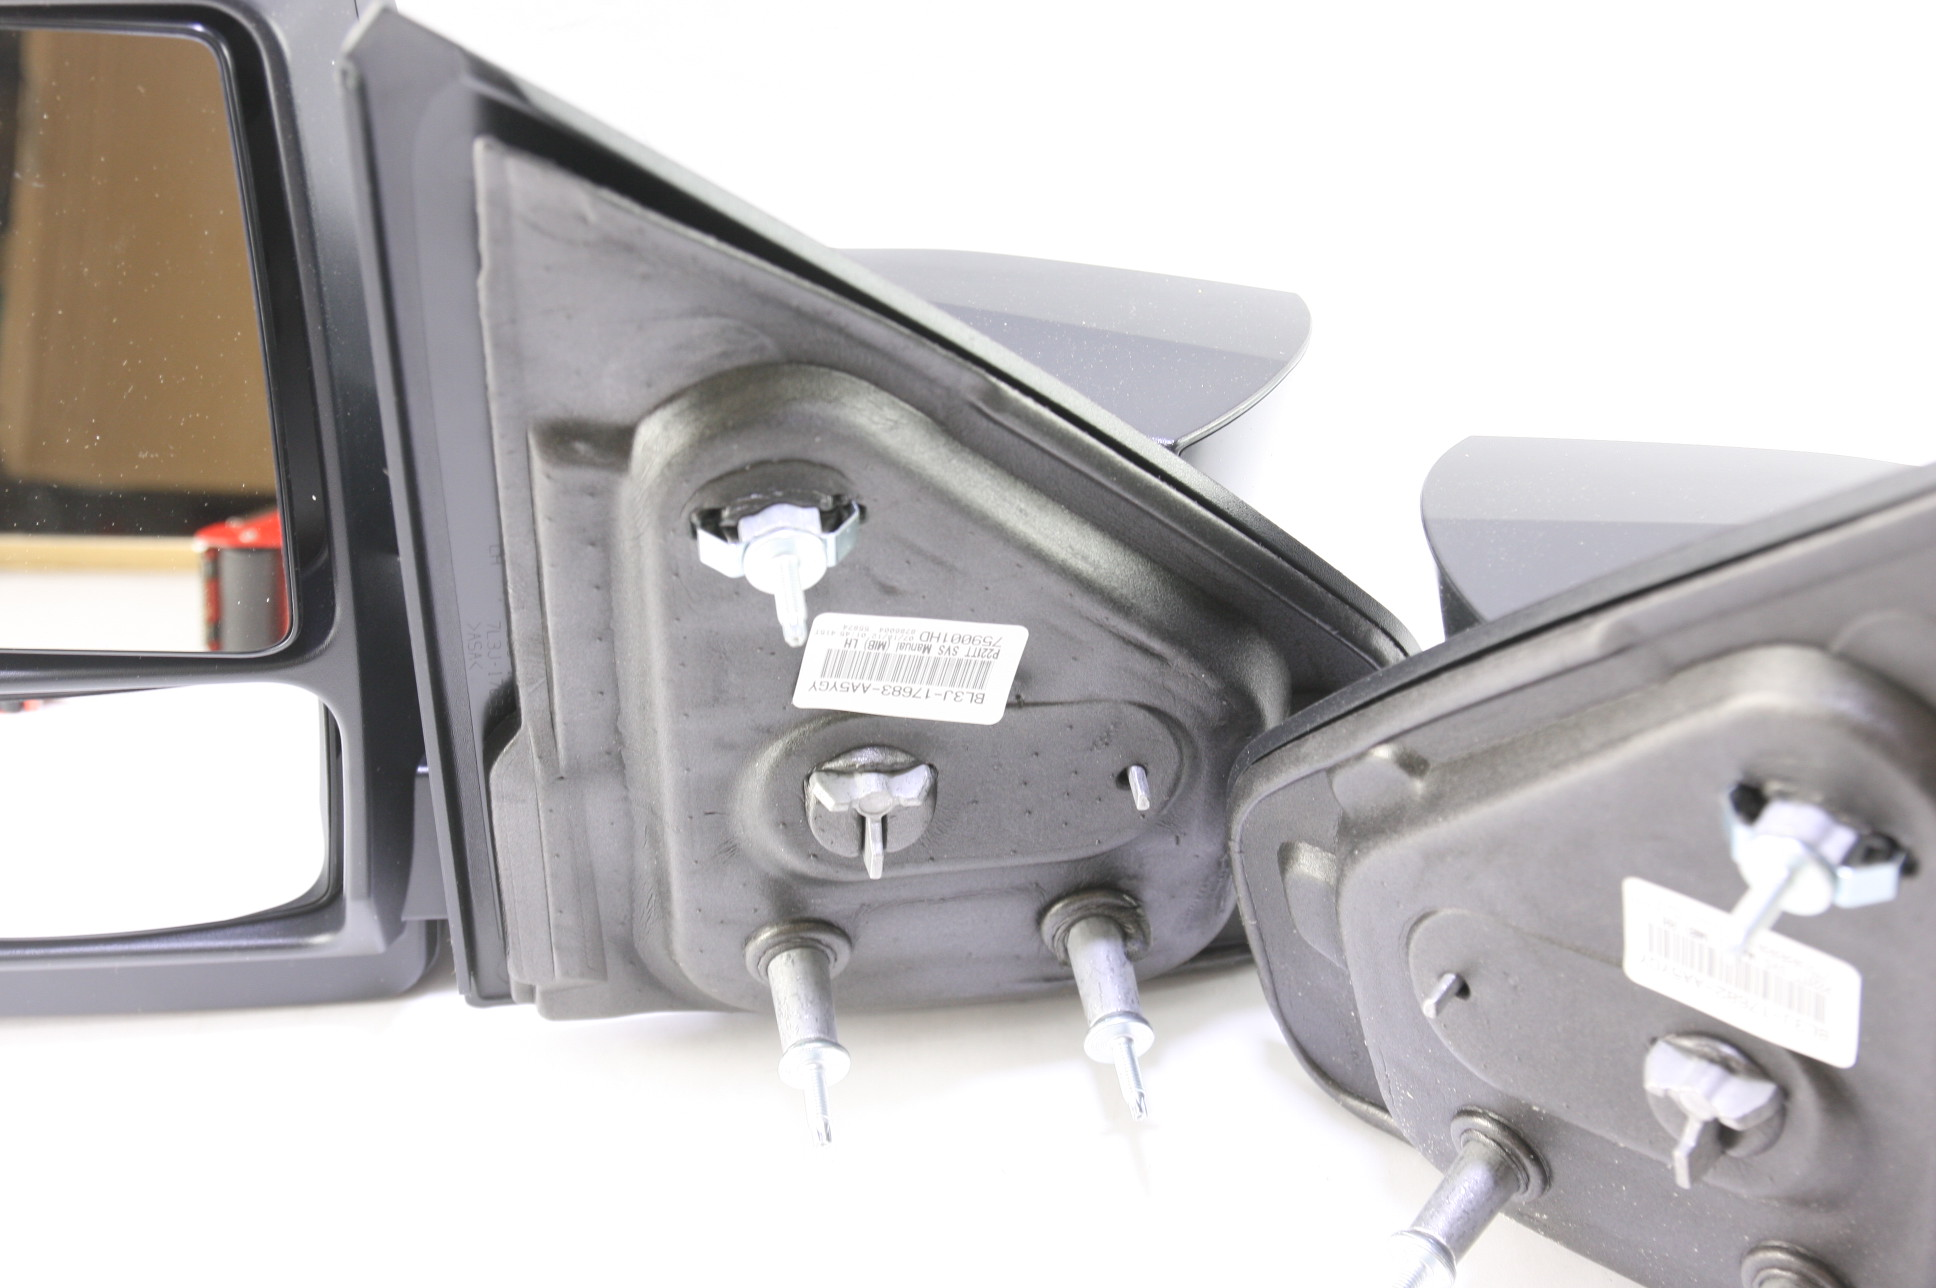 ***New OEM DL3Z17696AA Ford 05-14 F150 Manual Telescopic Trailer Tow Mirrors Set - image 6